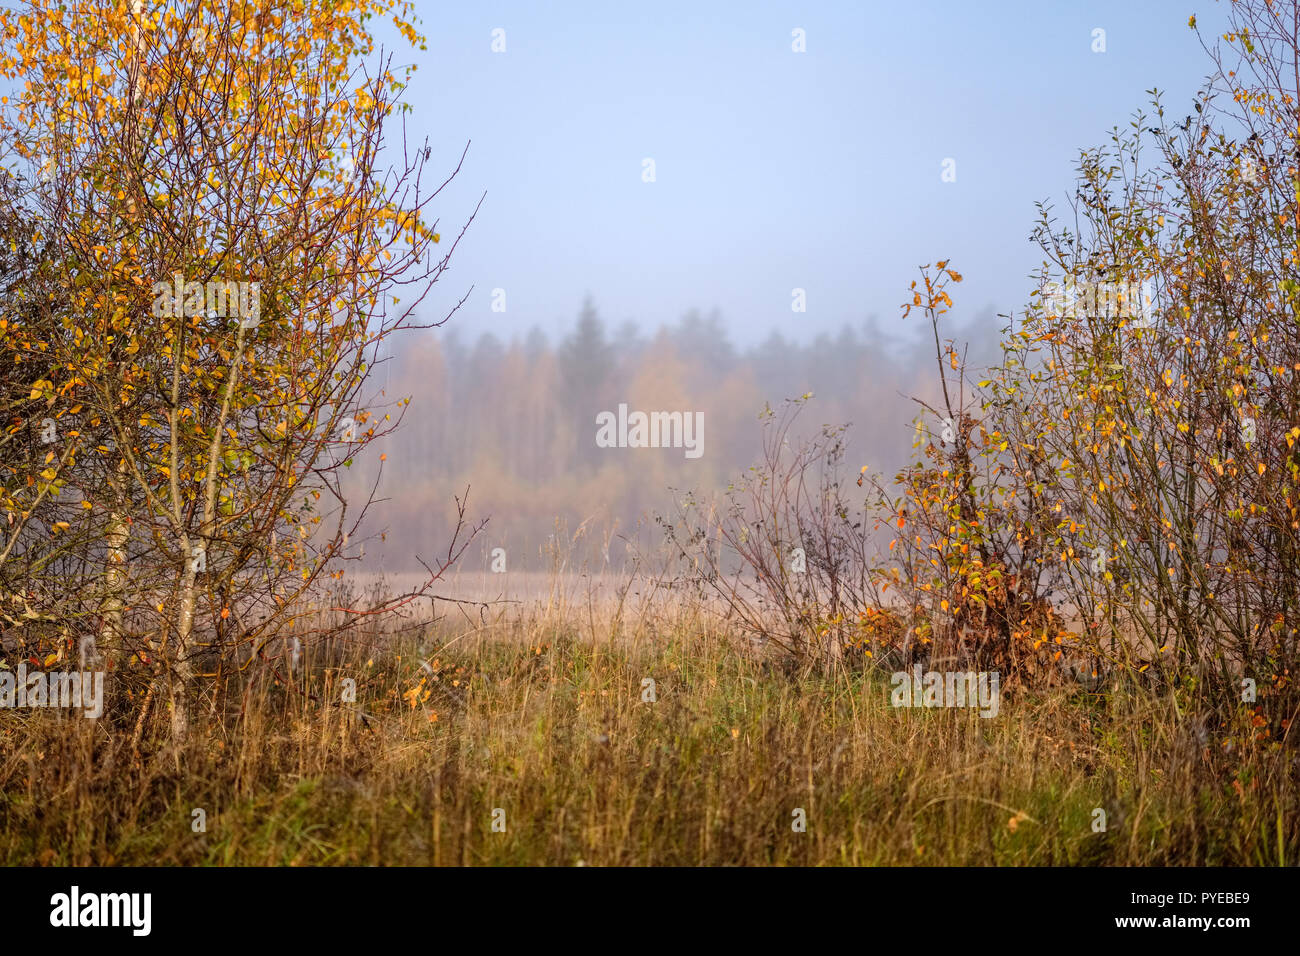 pleasing the senses or mind aesthetically lonely autumn trees hiding in mist in fall colored meadow - Stock Image